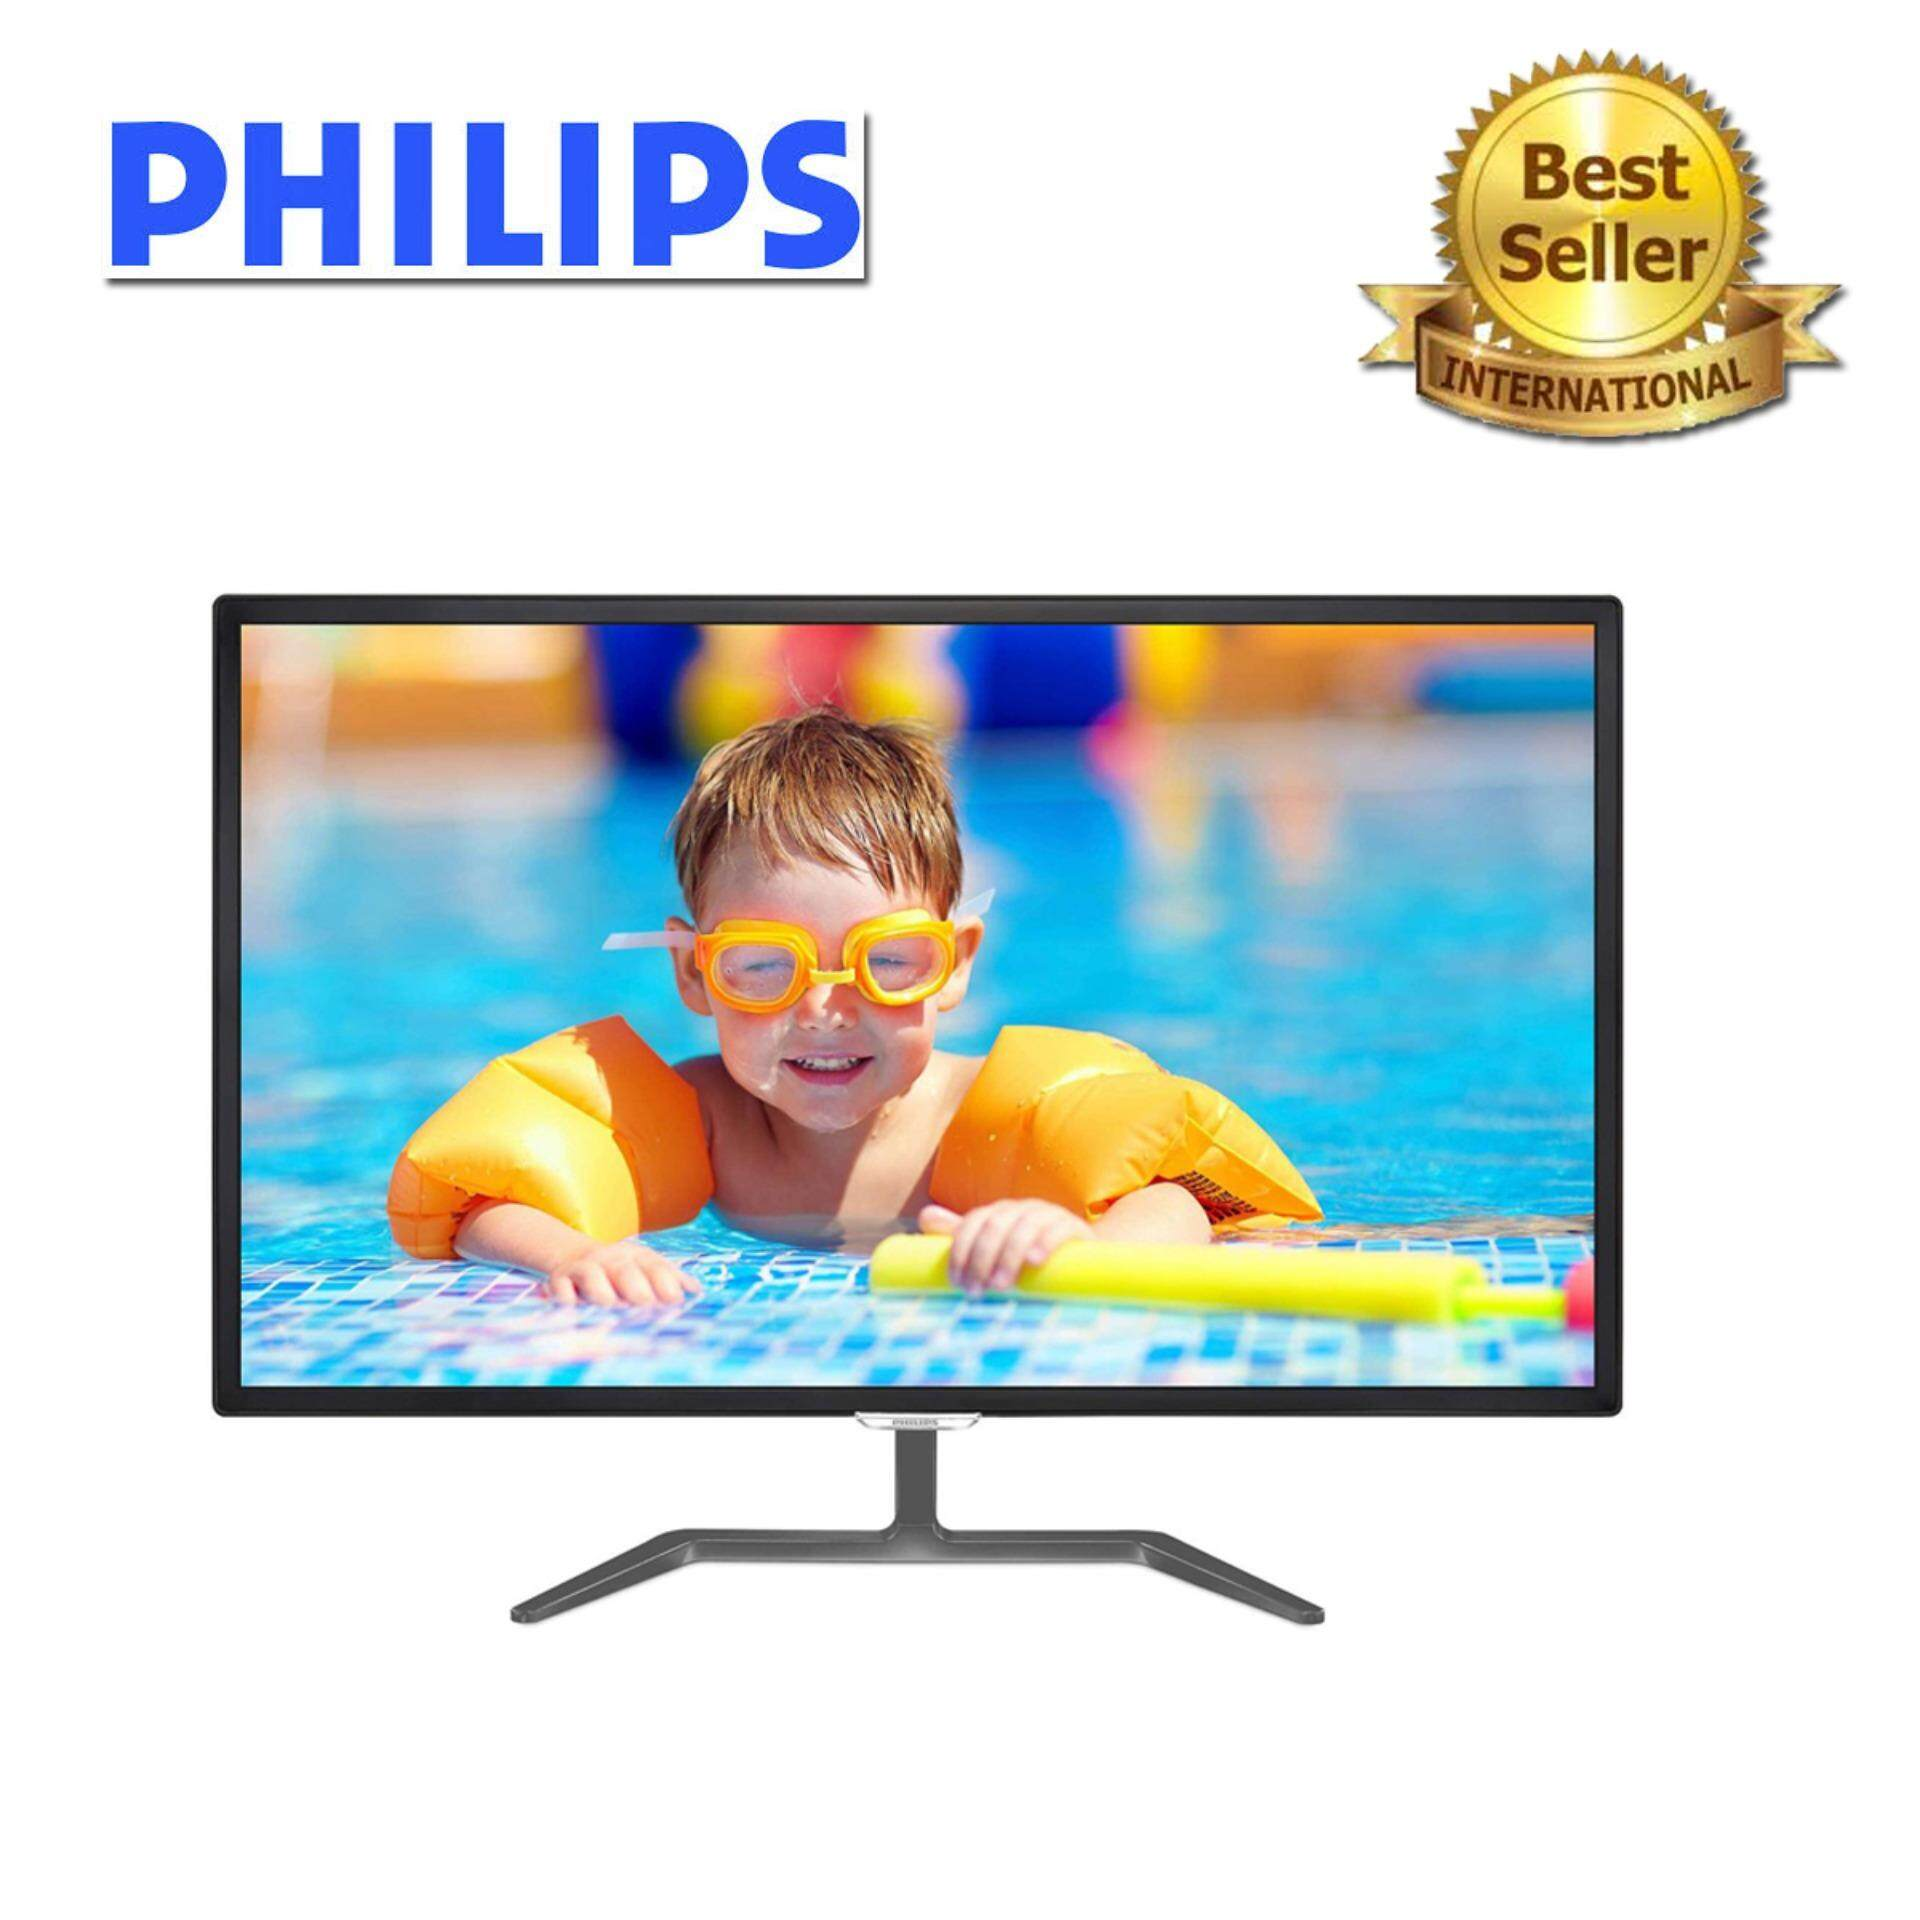 Sell 32 Philips Electrolu Cheapest Best Quality Th Store Led Tv 32pha4100s 70 Inch Slim Thb 11900